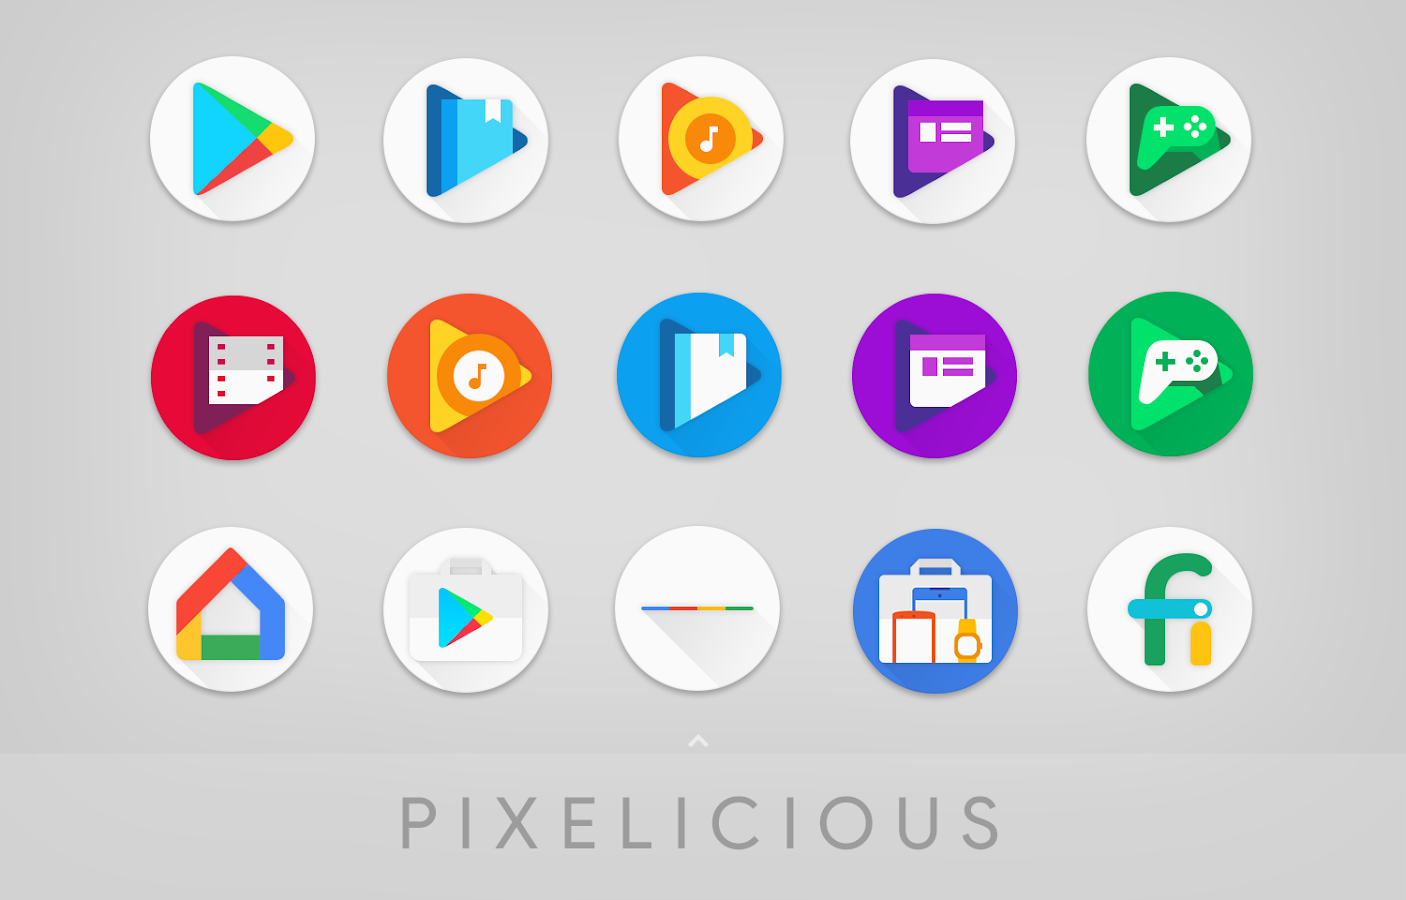 PIXELICIOUS ICON PACK Screenshot 13